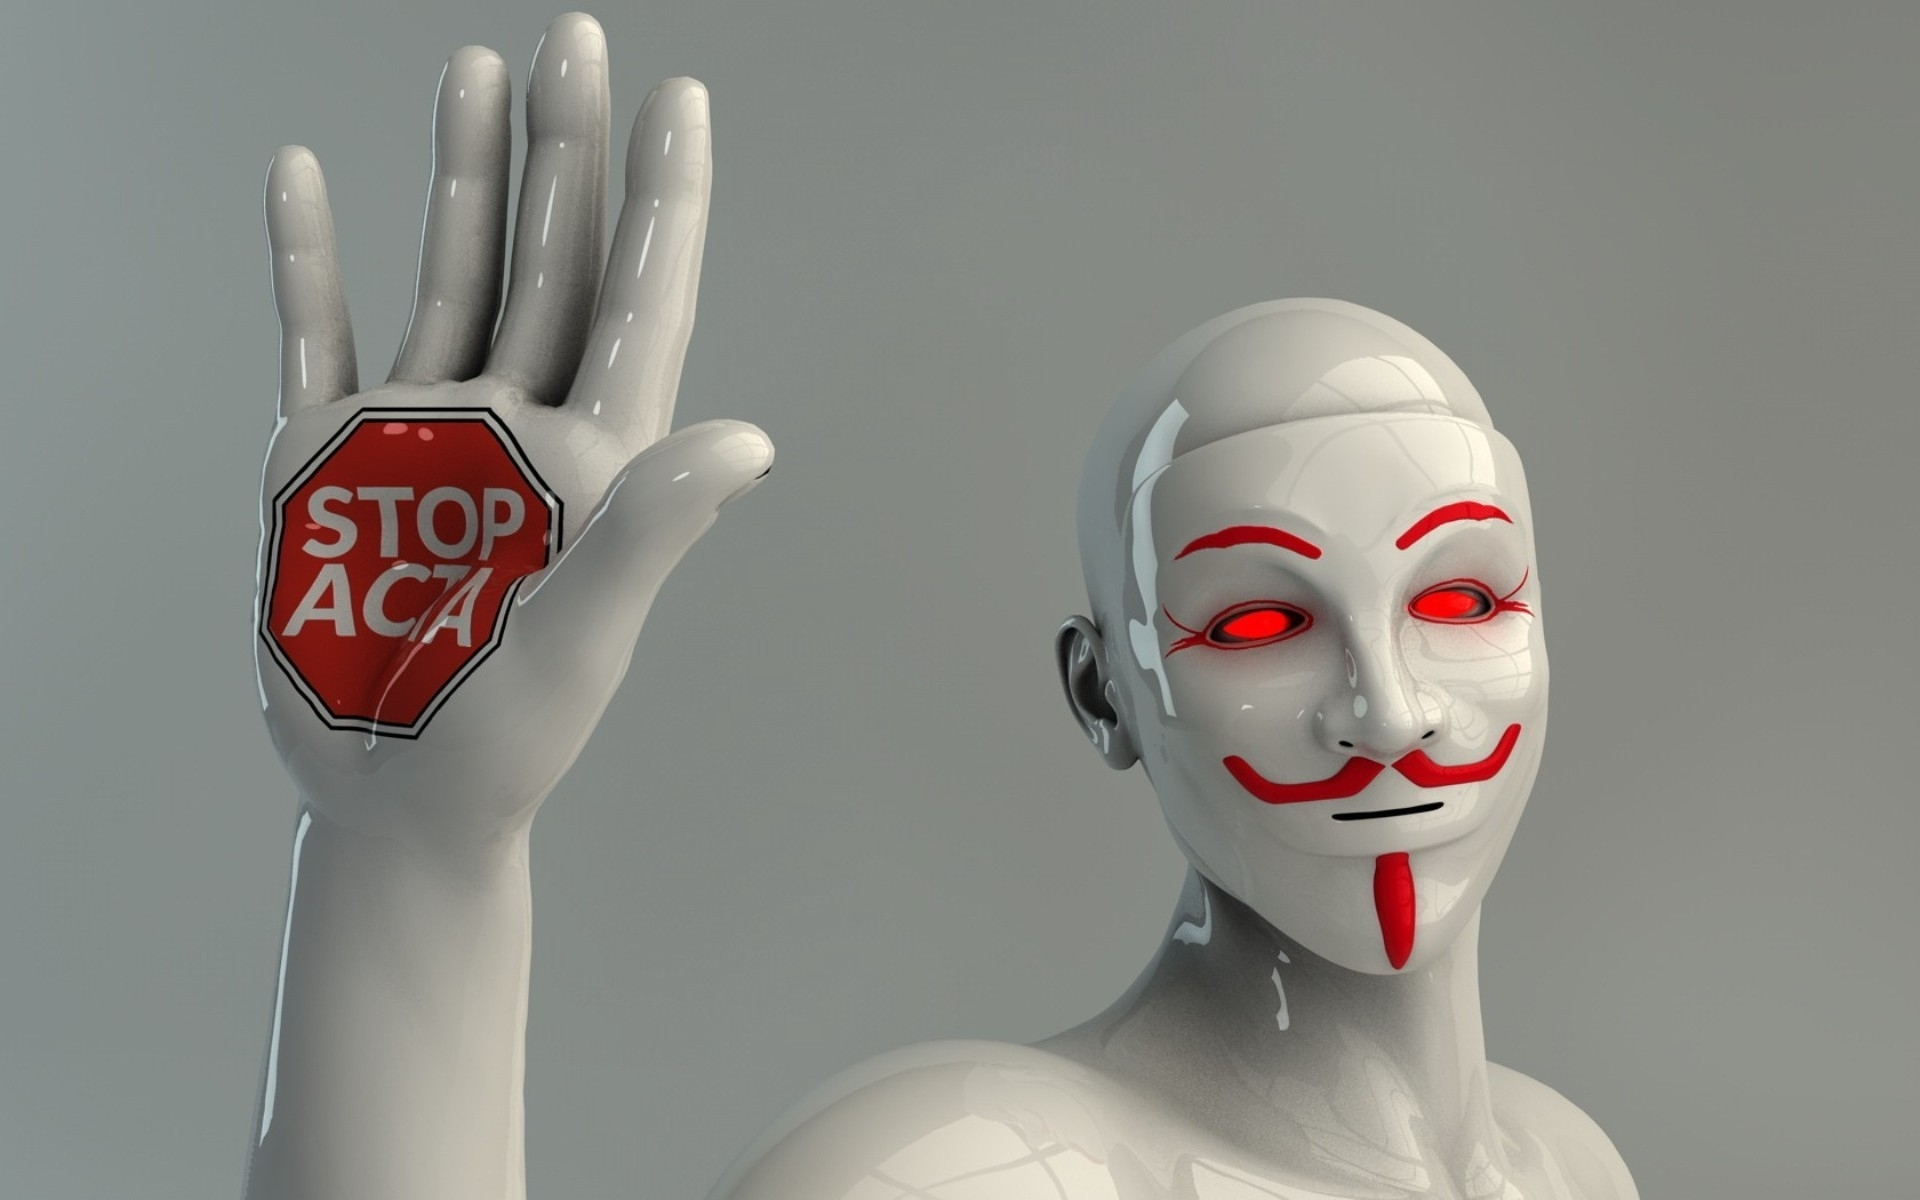 Anonymous Mask Wallpaper 3d People Robot Mannequin Lighting Hand Protest Gesture